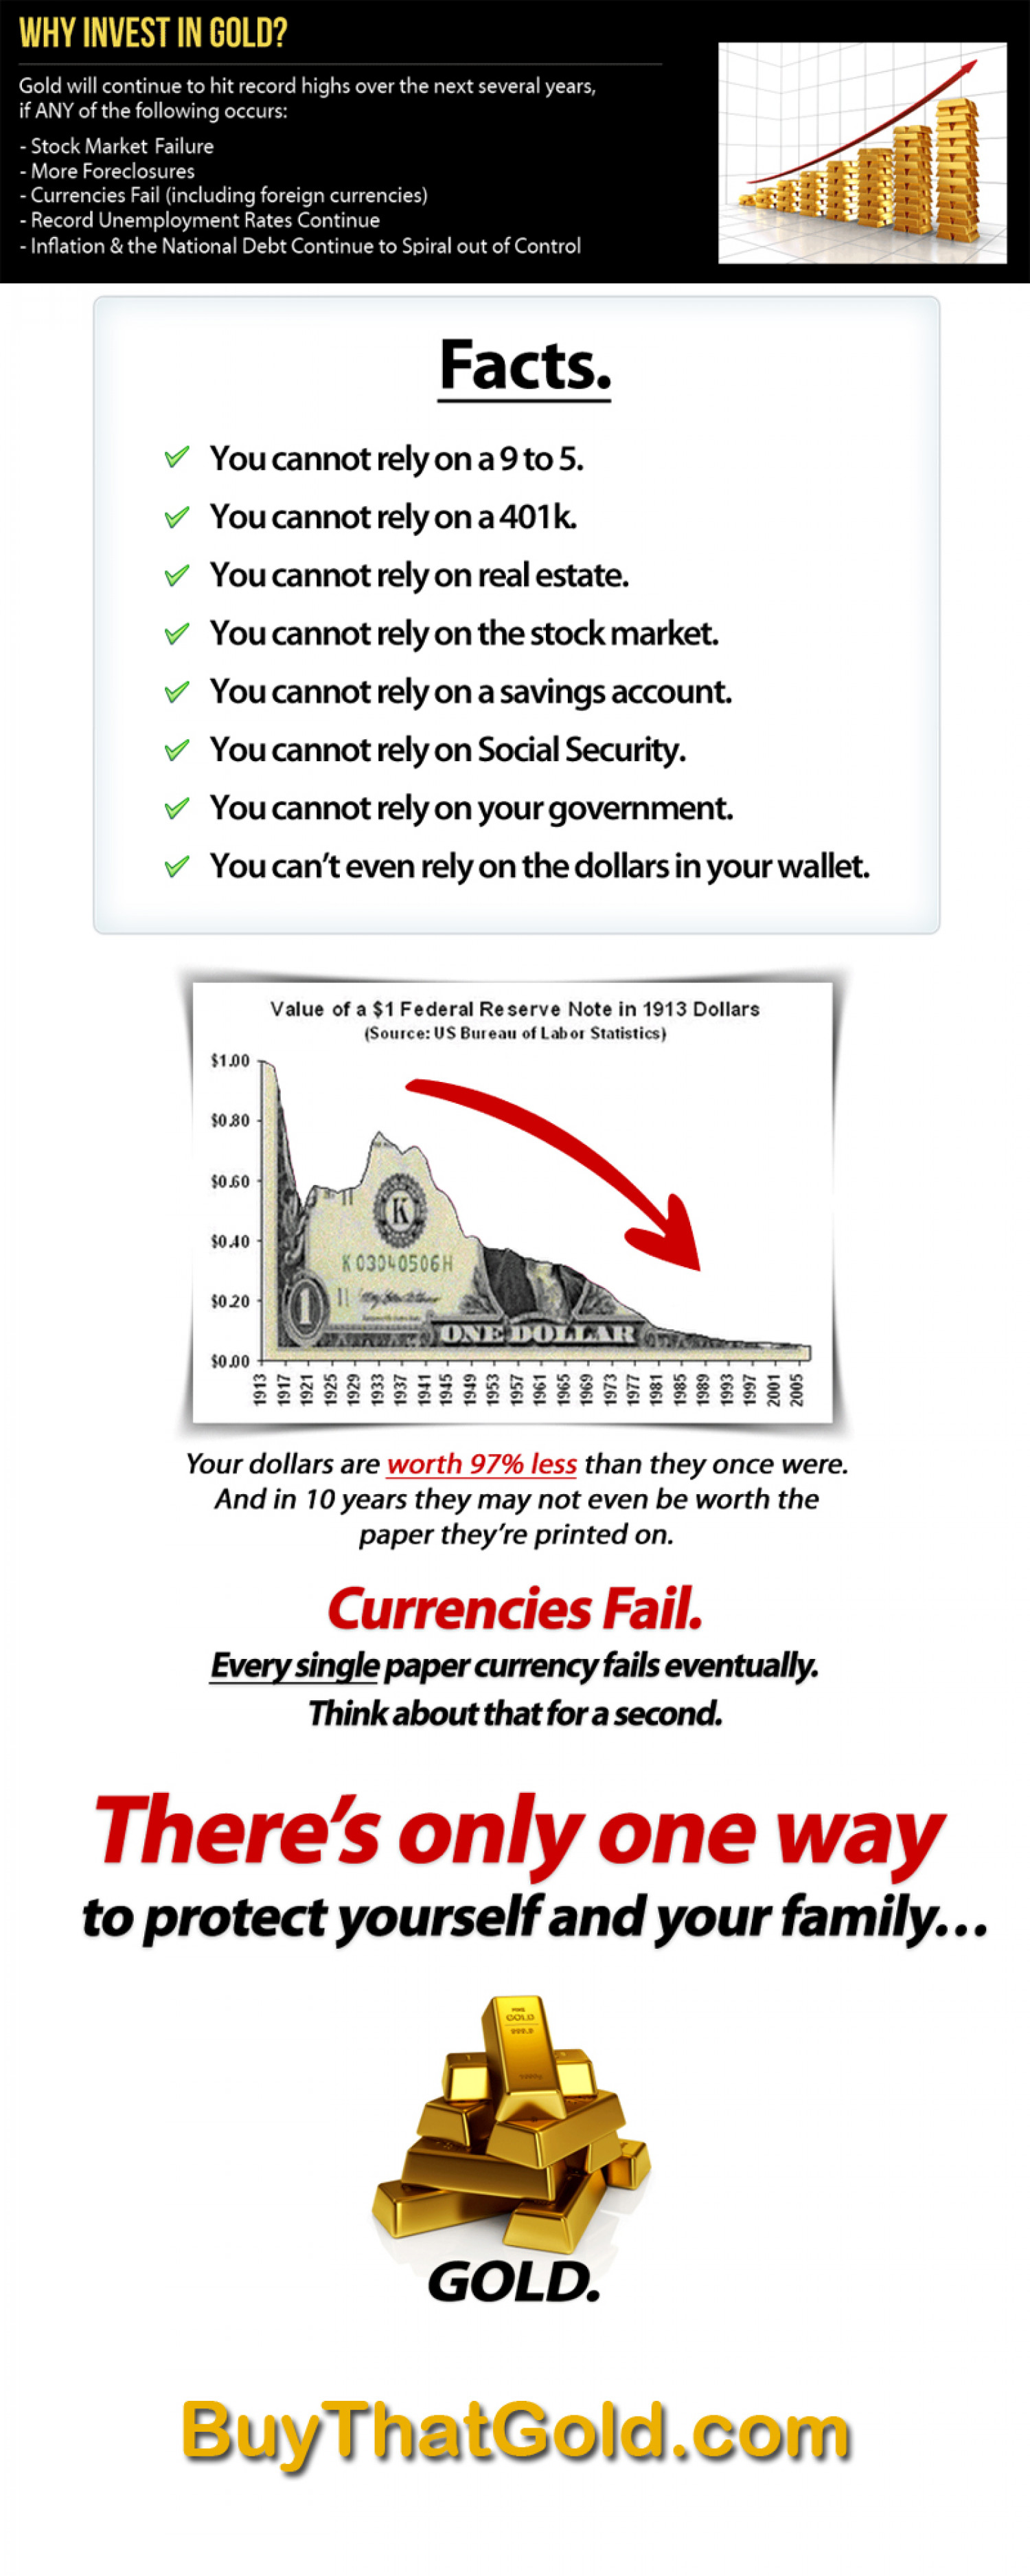 Precious gold Verses The dollar Infographic